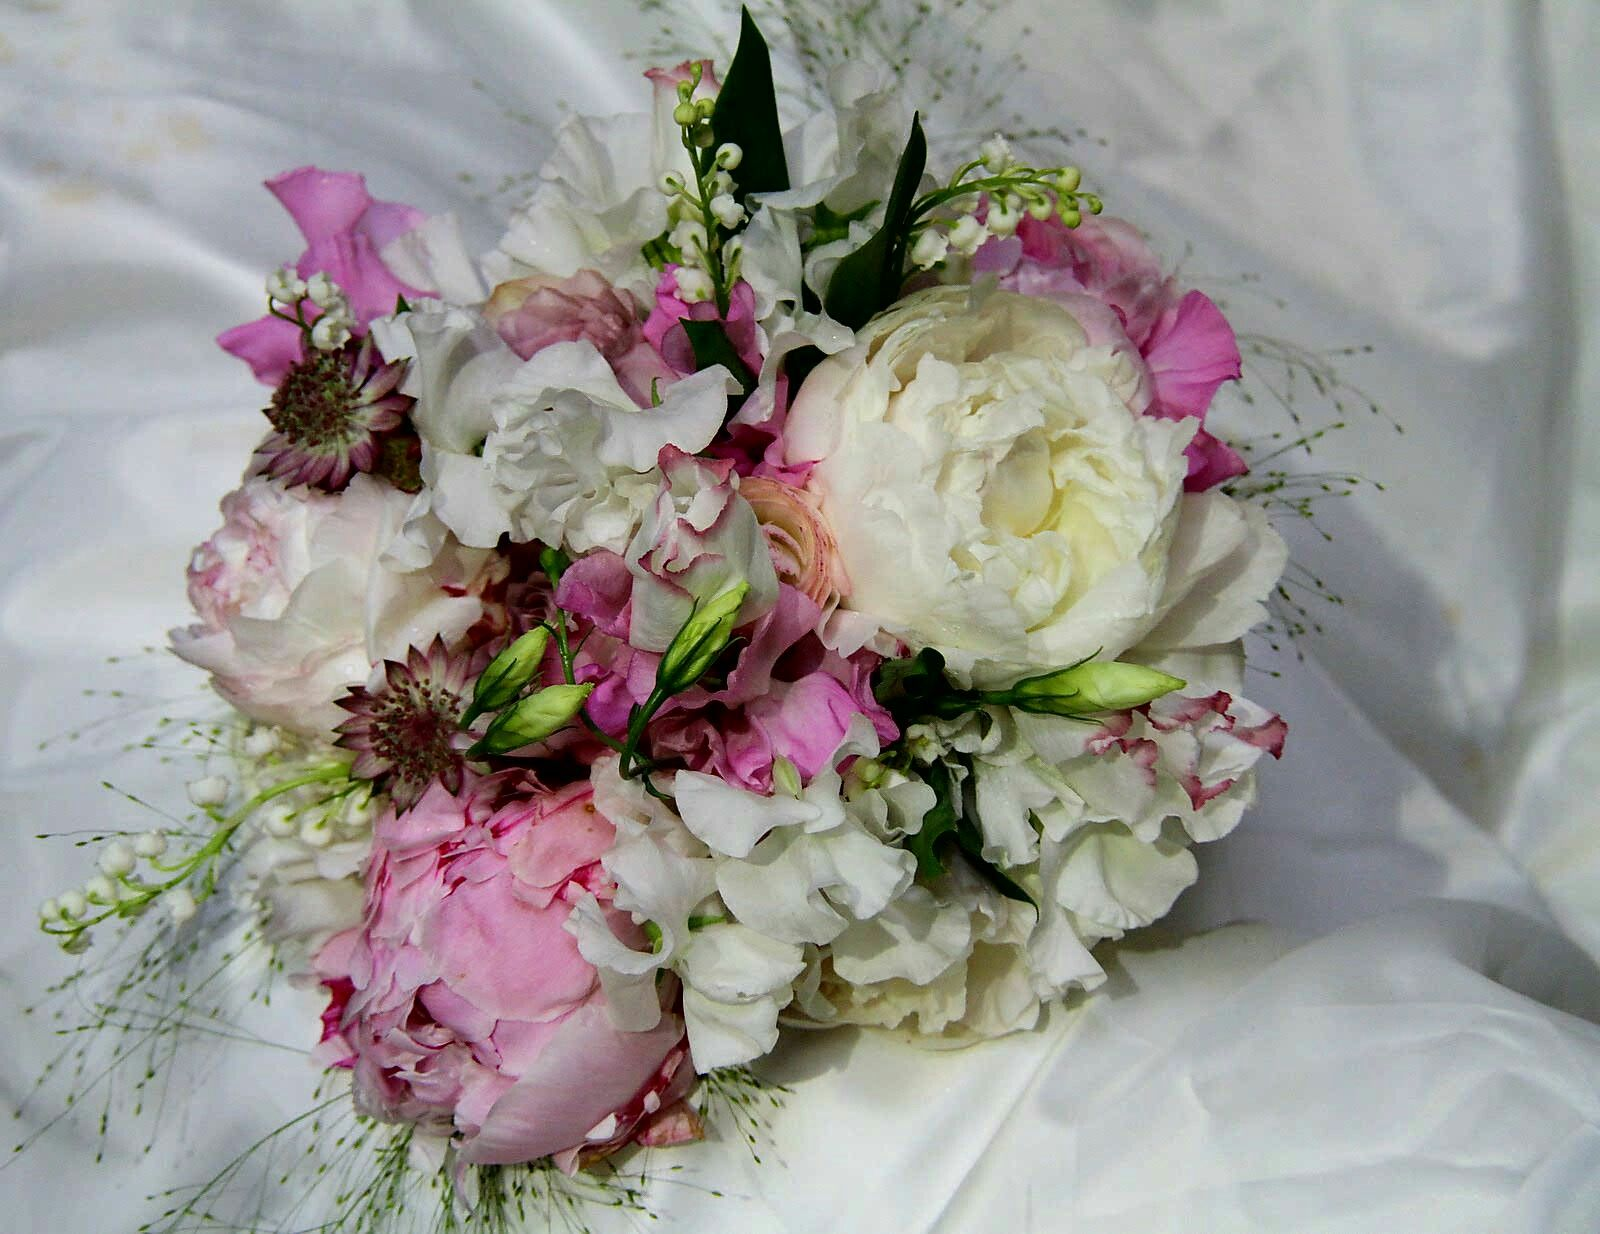 Lily Of The Valley Wedding Bouquet: Dreamy Wedding Bouquet Arranged With: White Lily Of The